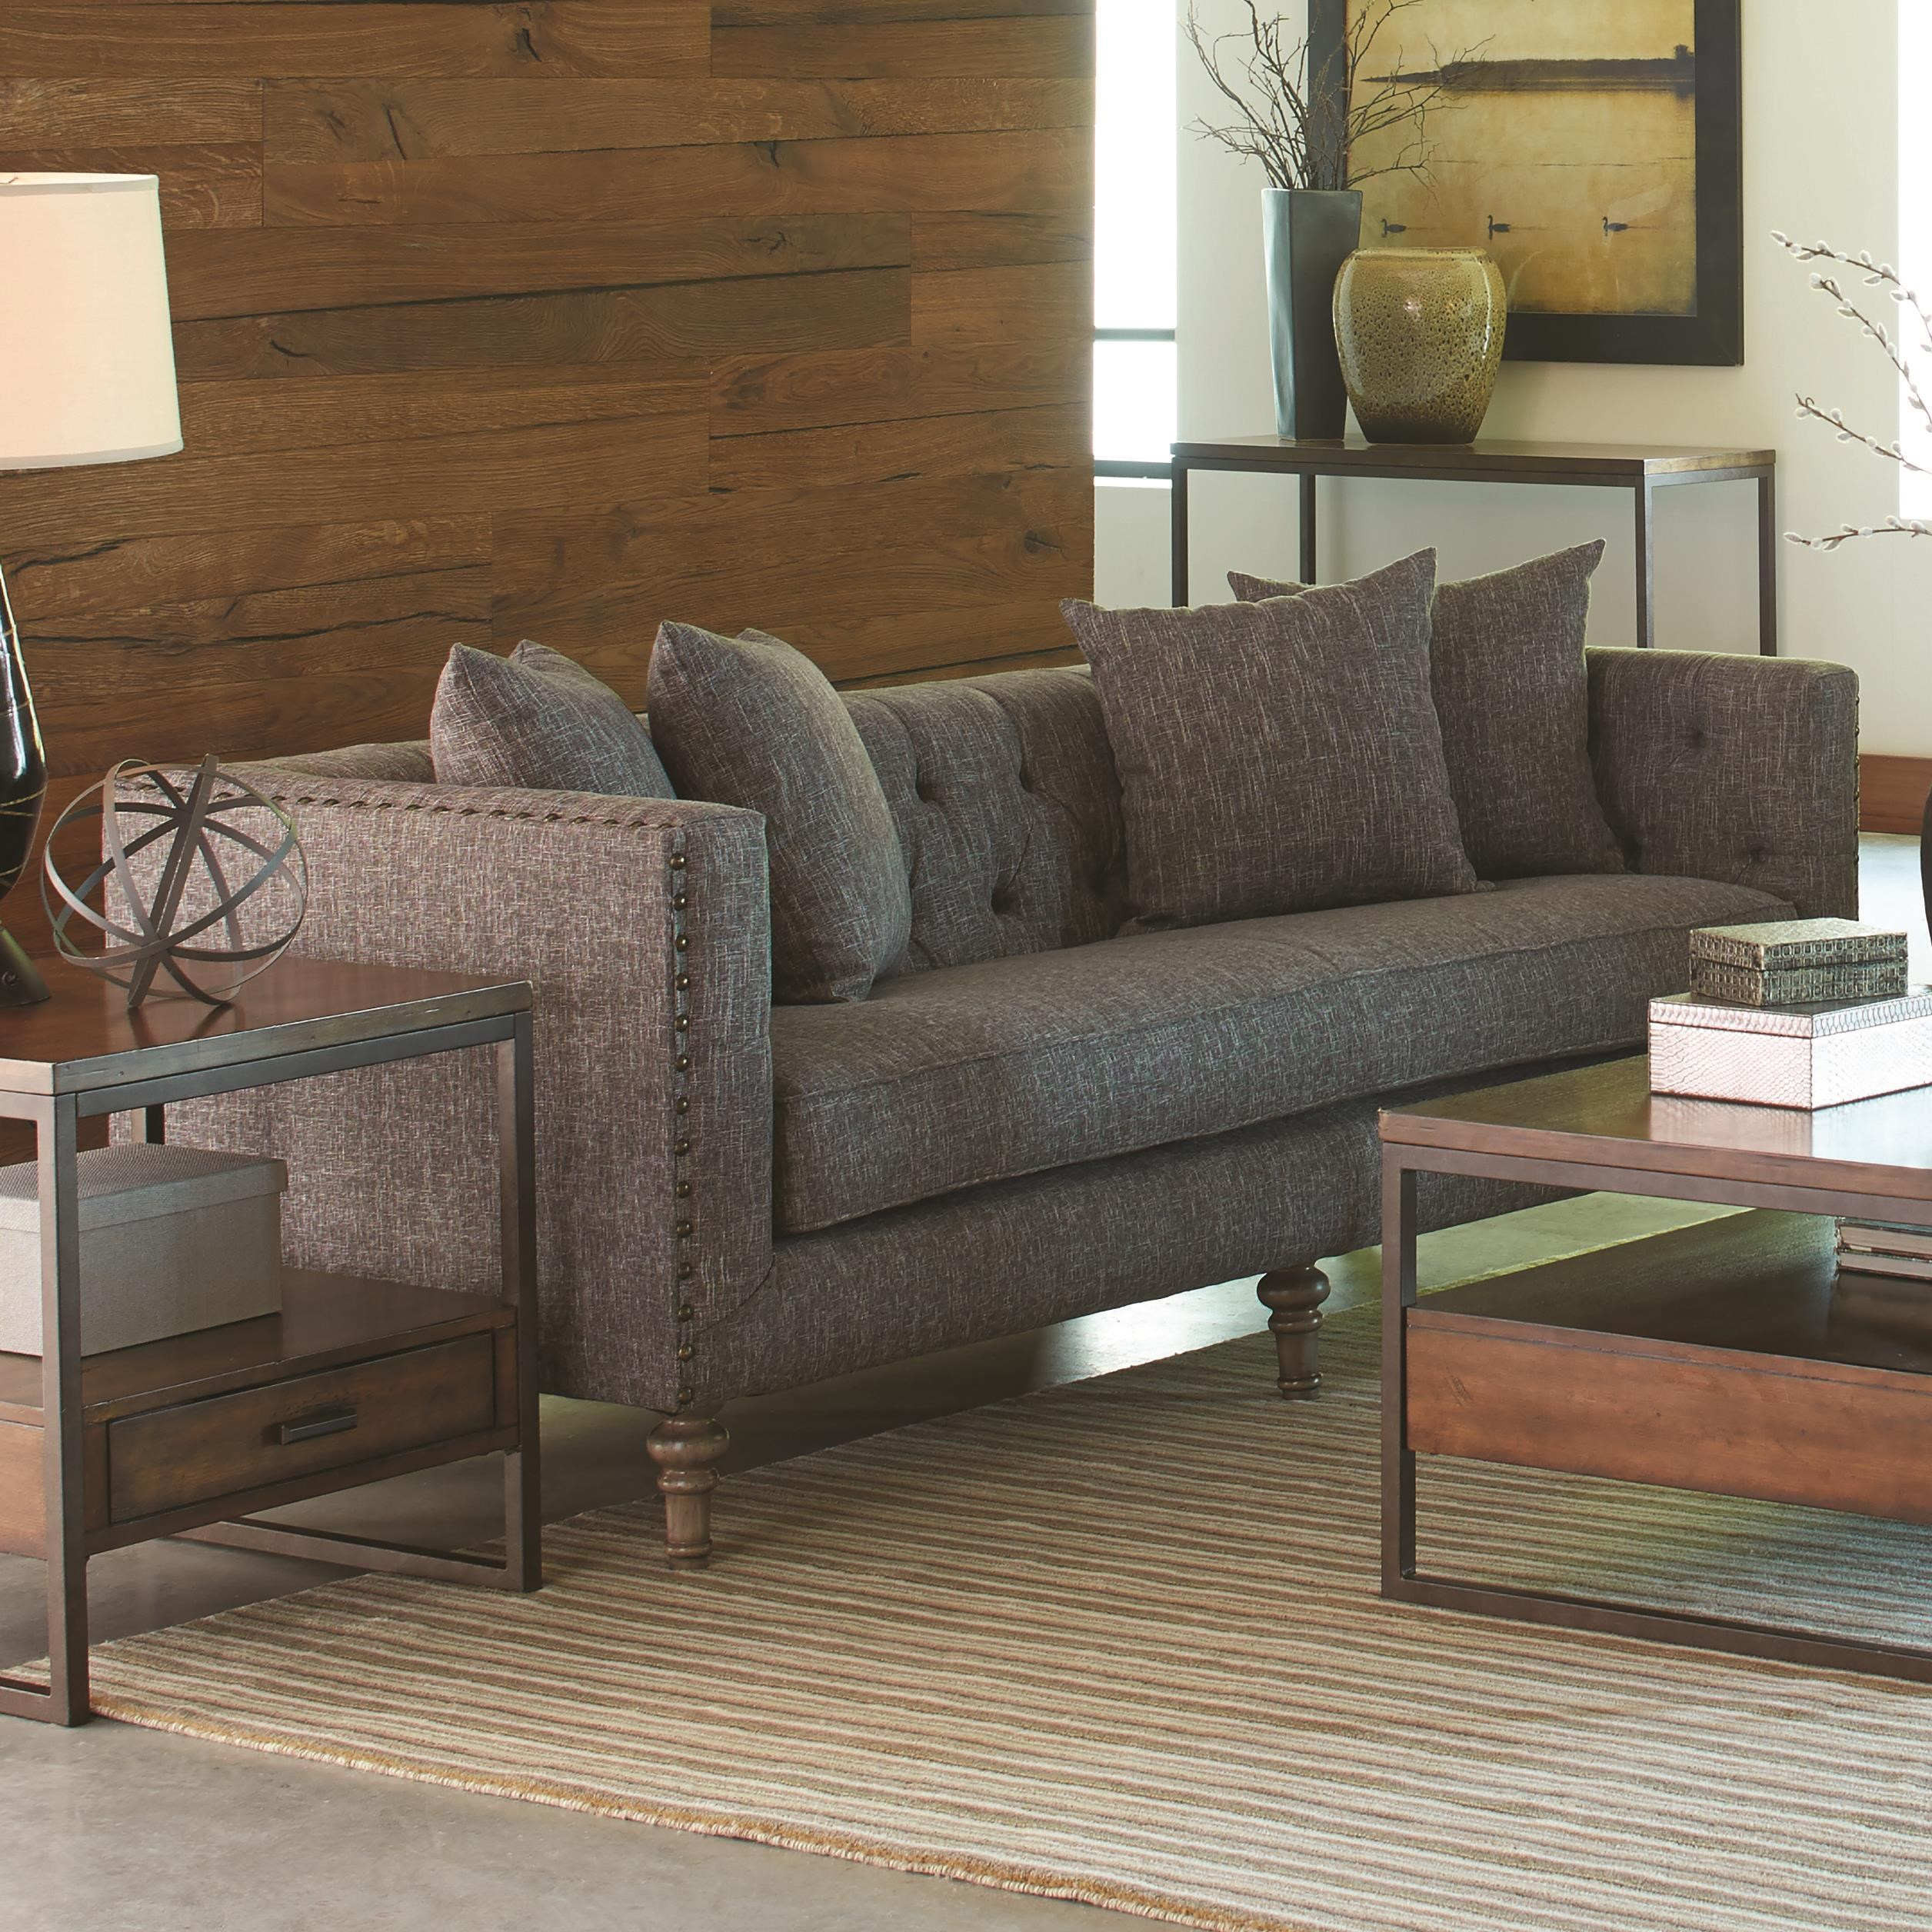 Charmant Coaster Ellery Sofa With Traditional Industrial Style   Coaster Fine  Furniture